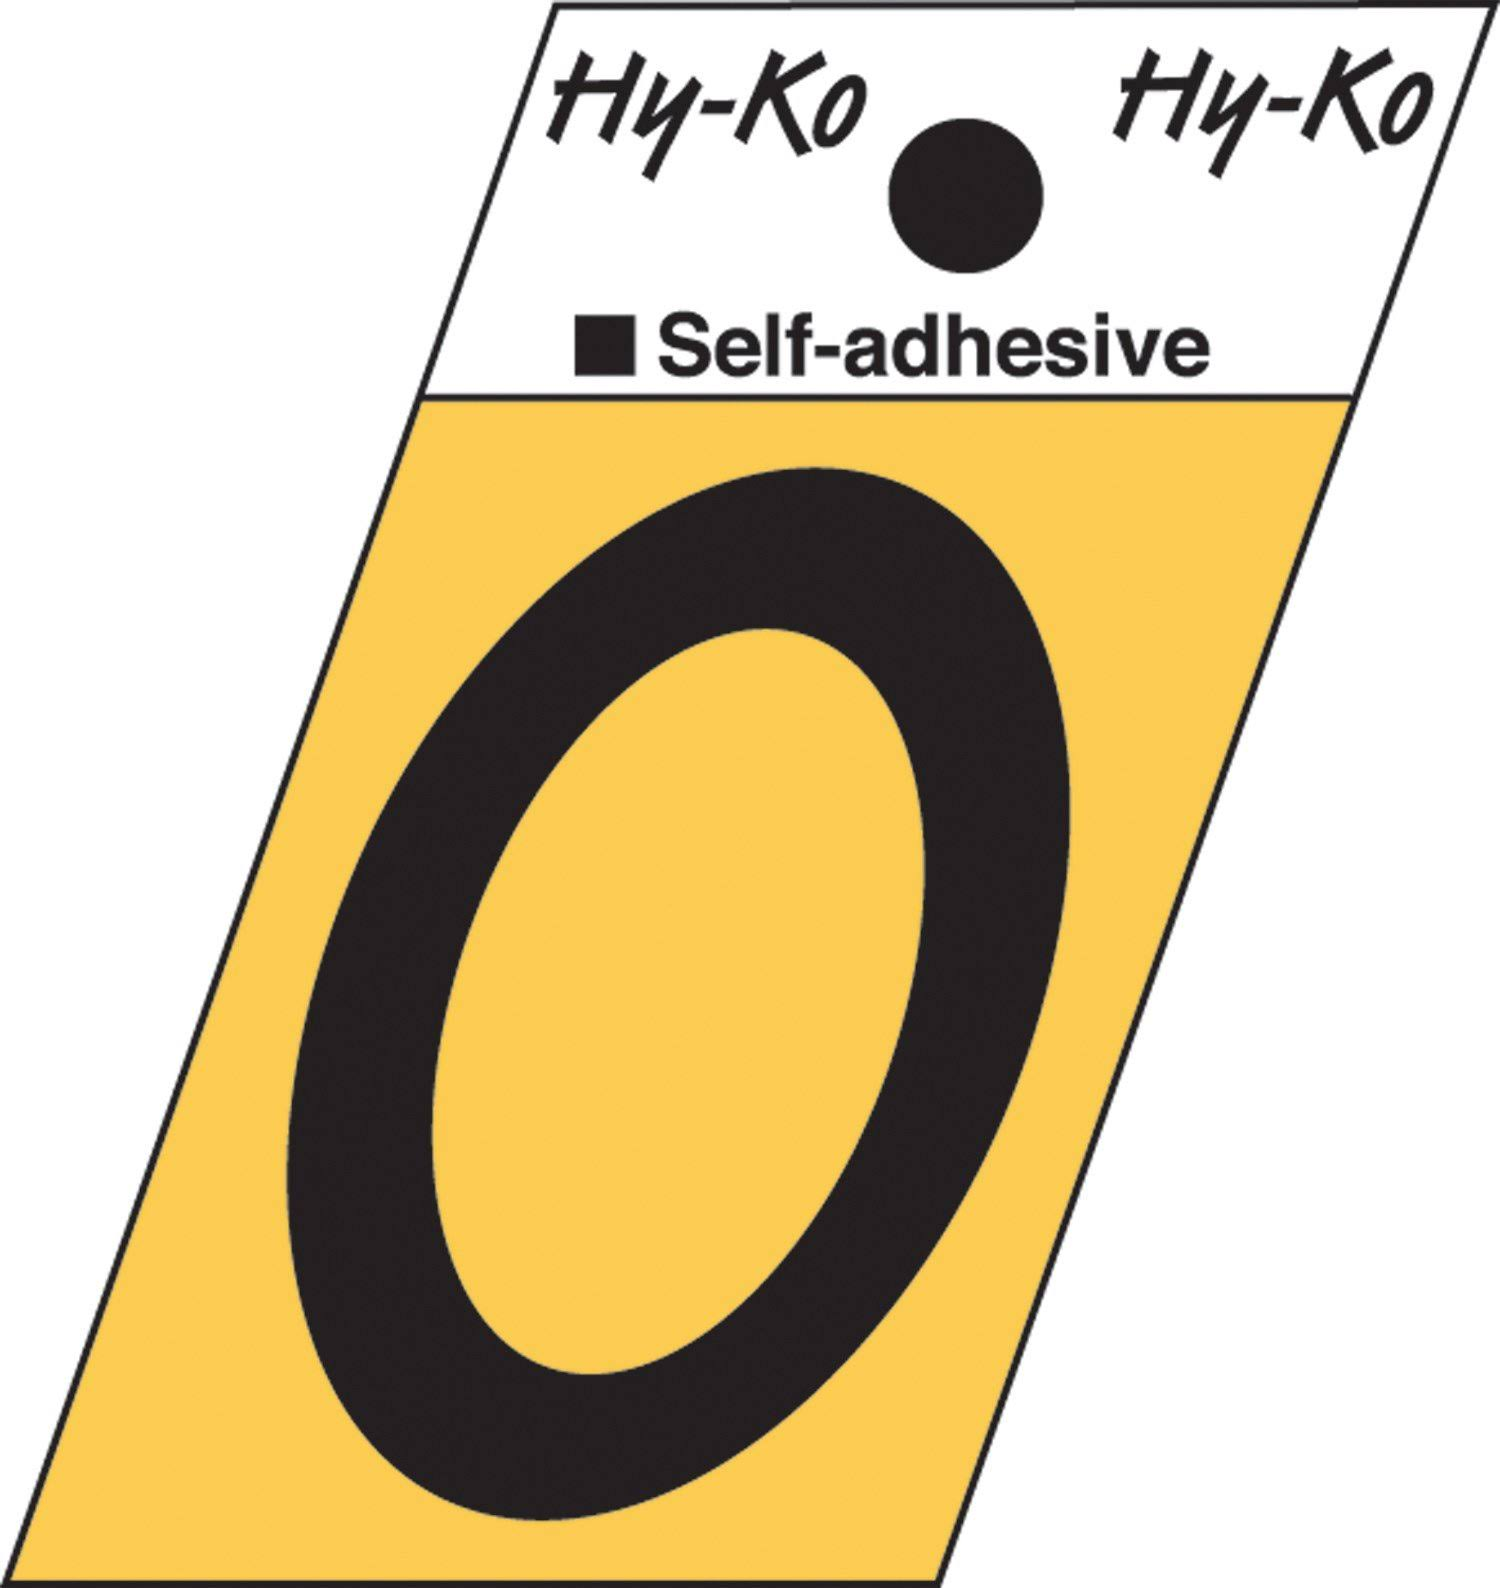 Hy-Ko Self-Adhesive Aluminum Letter Set, Black